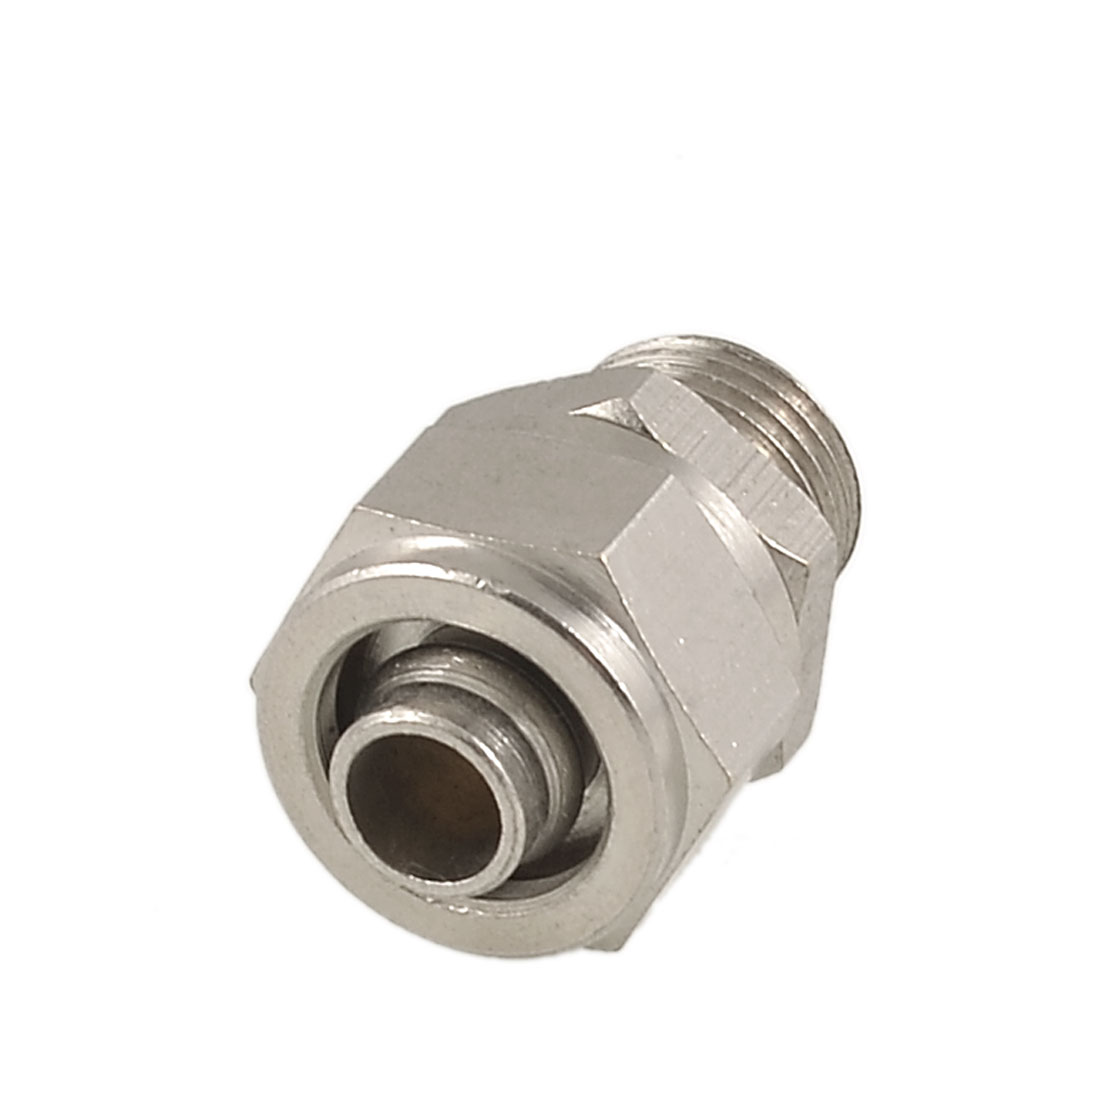 "0.51"" Male Threaded 0.31"" Pipe Air Pneumatic Quick Coupler Connector Silver Tone"